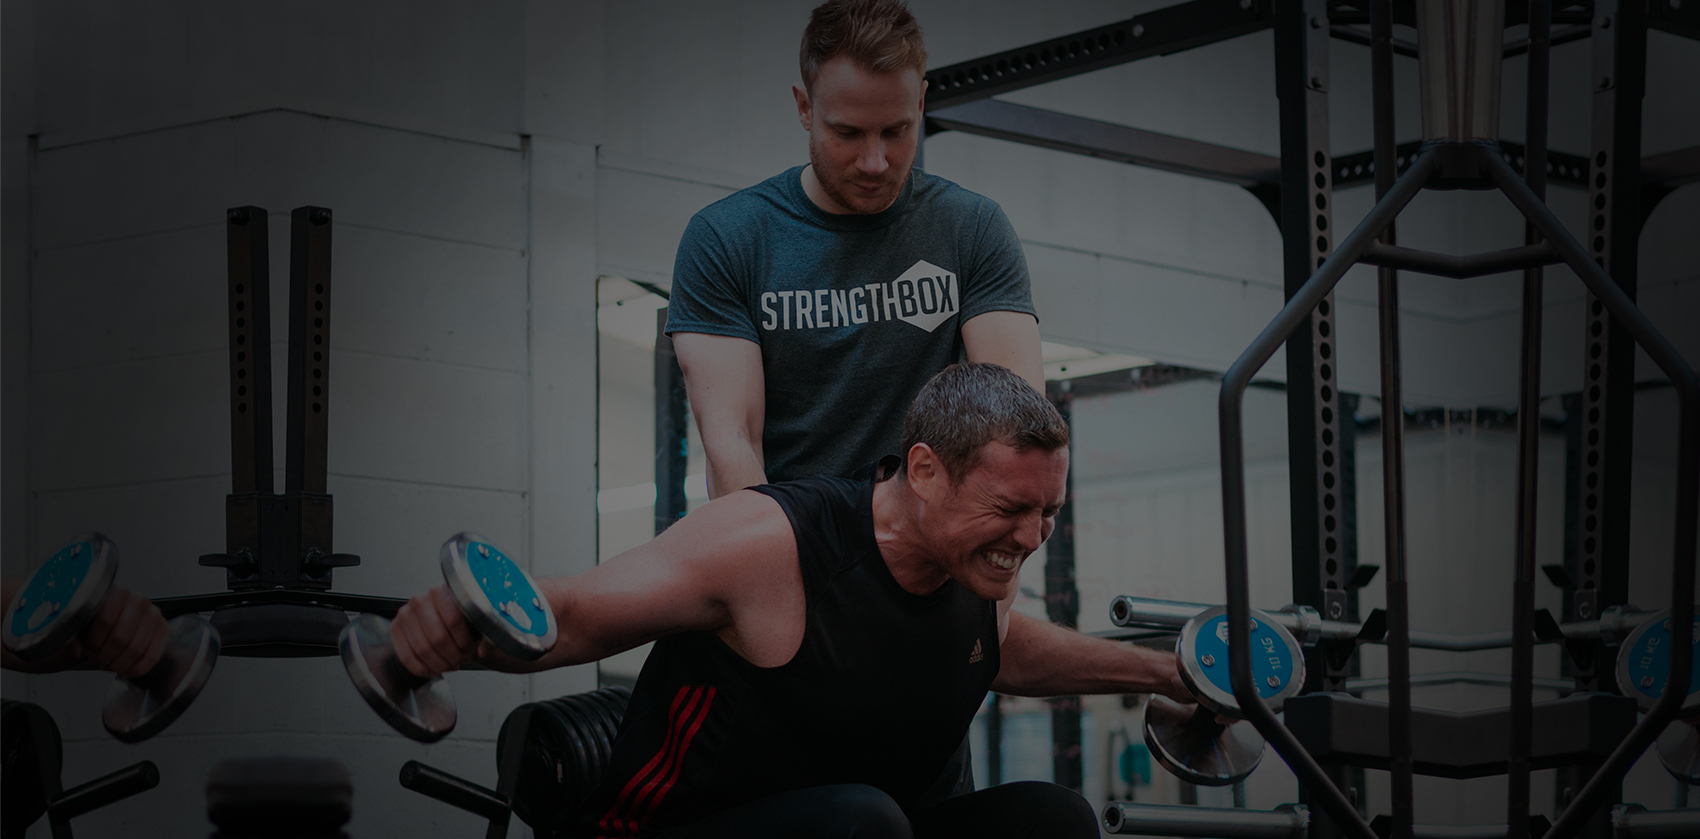 Expert Personal Training and Private Gym in Wokingham, Berkshire